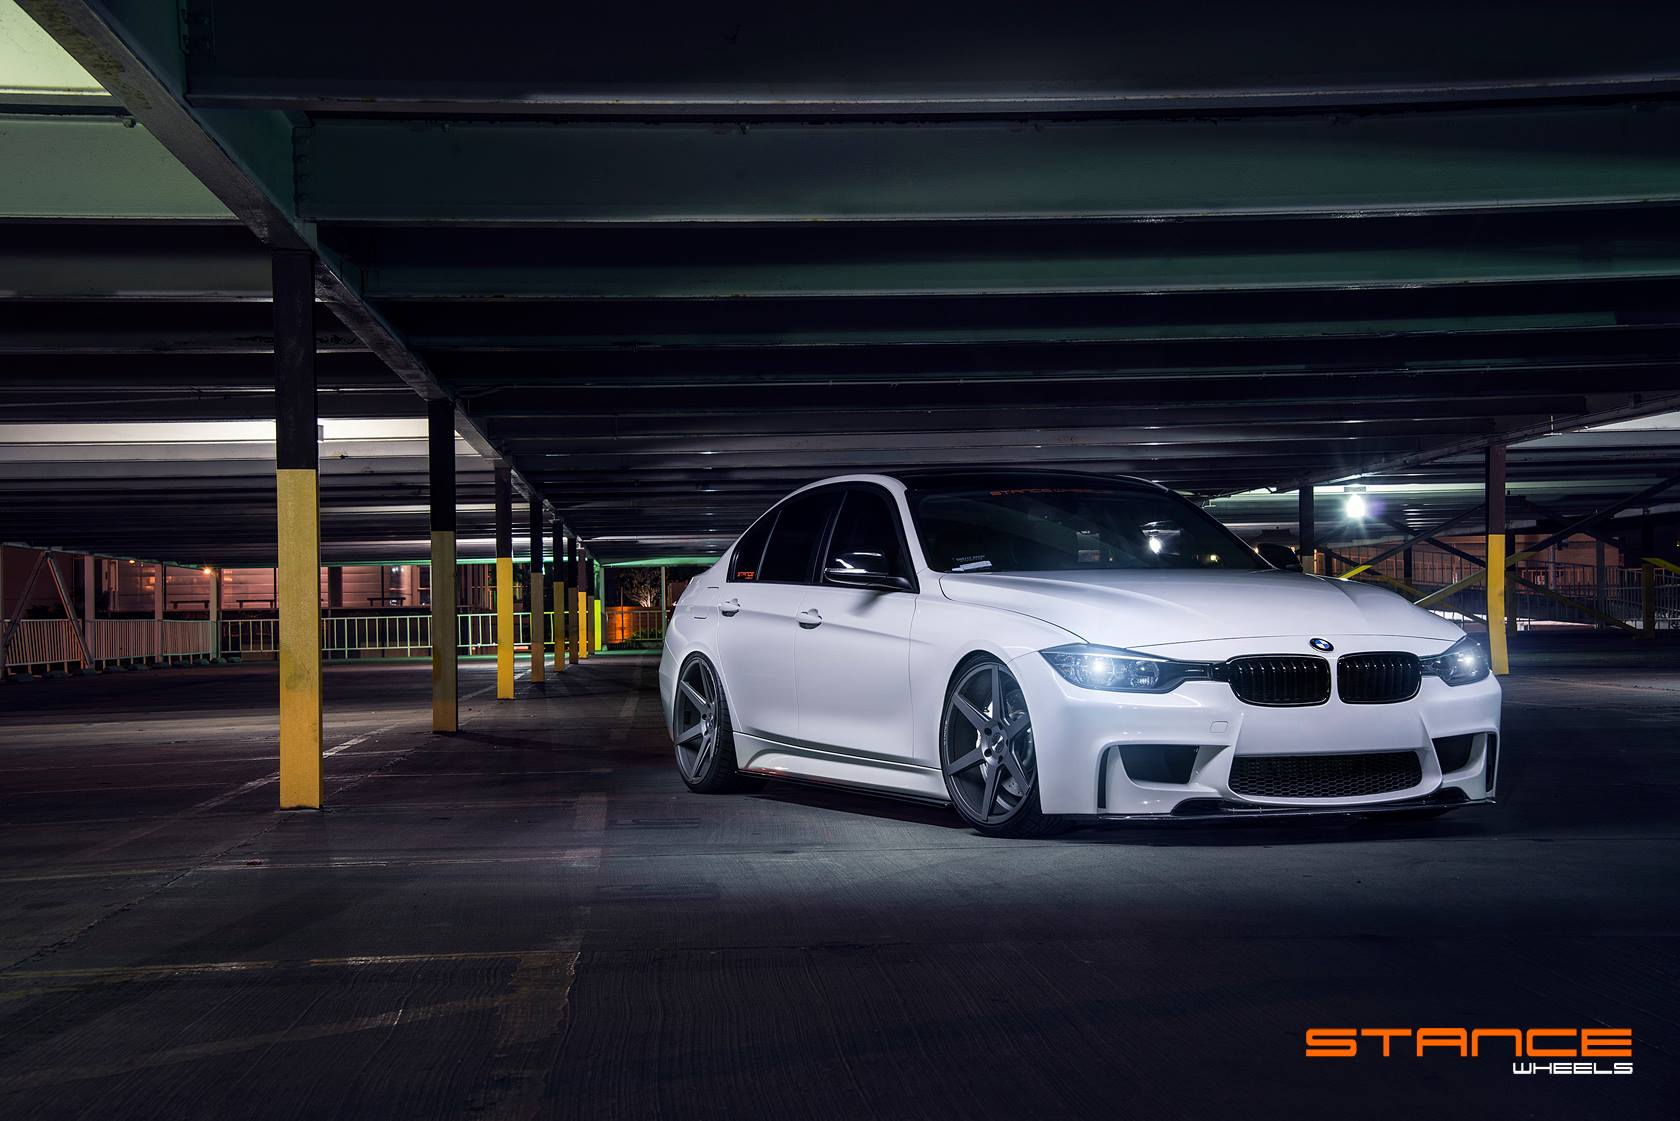 Stance Wheels SC-6 Slate Grey on White BMW F30